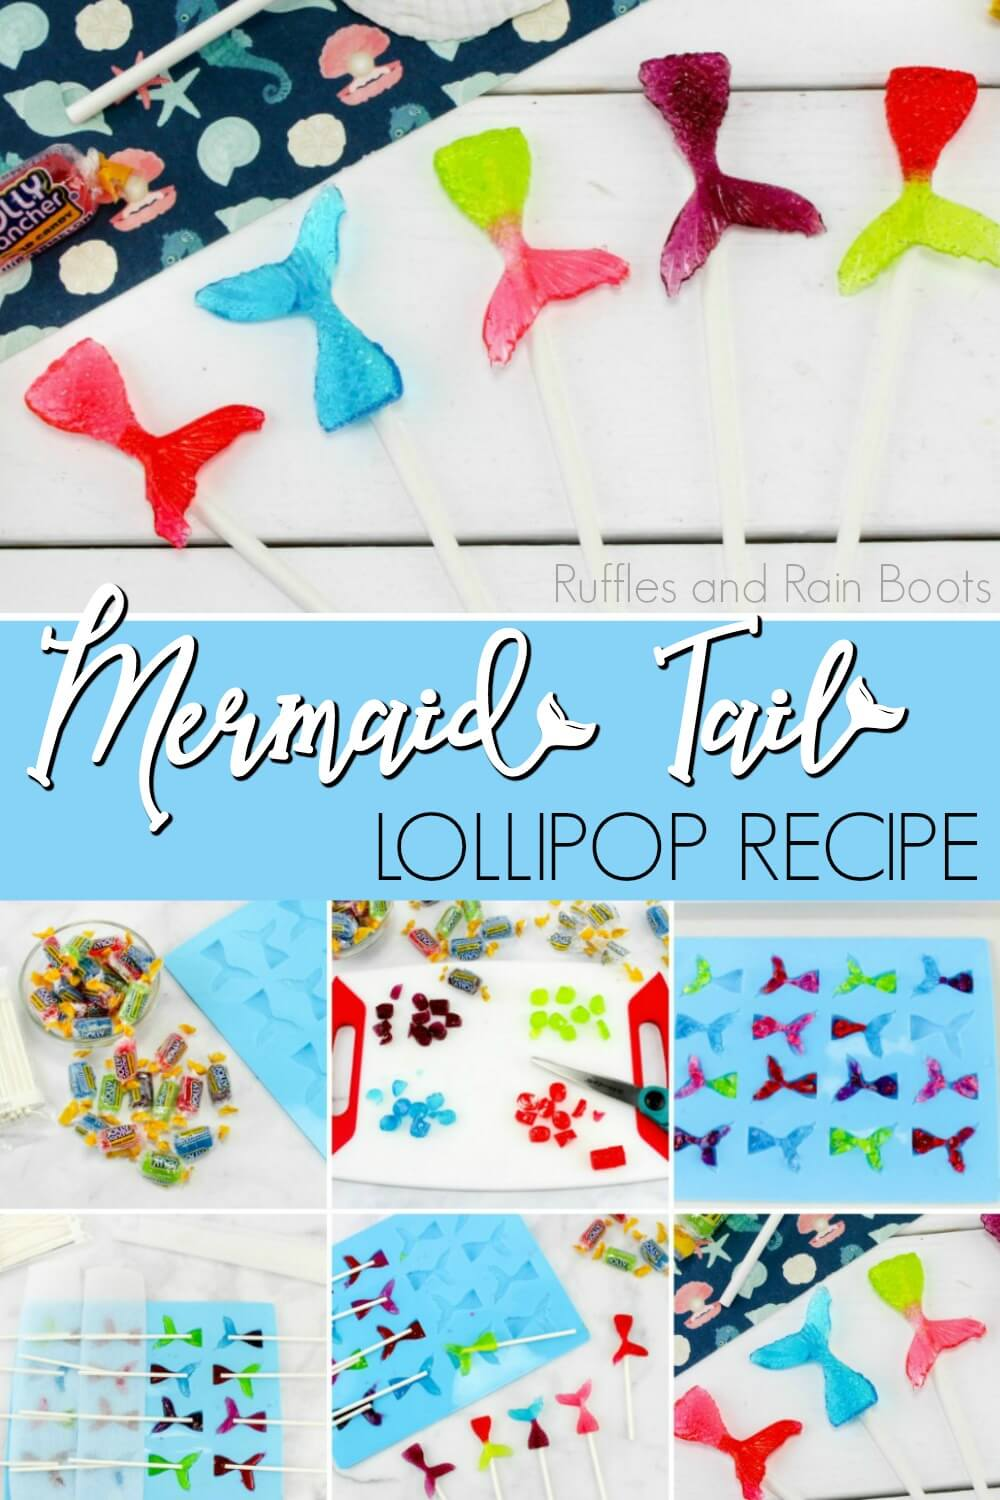 Photo collage of mermaid suckers and photo tutorial collage for how to make mermaid tail lollipops with text which reads mermaid tail lollipop recipe